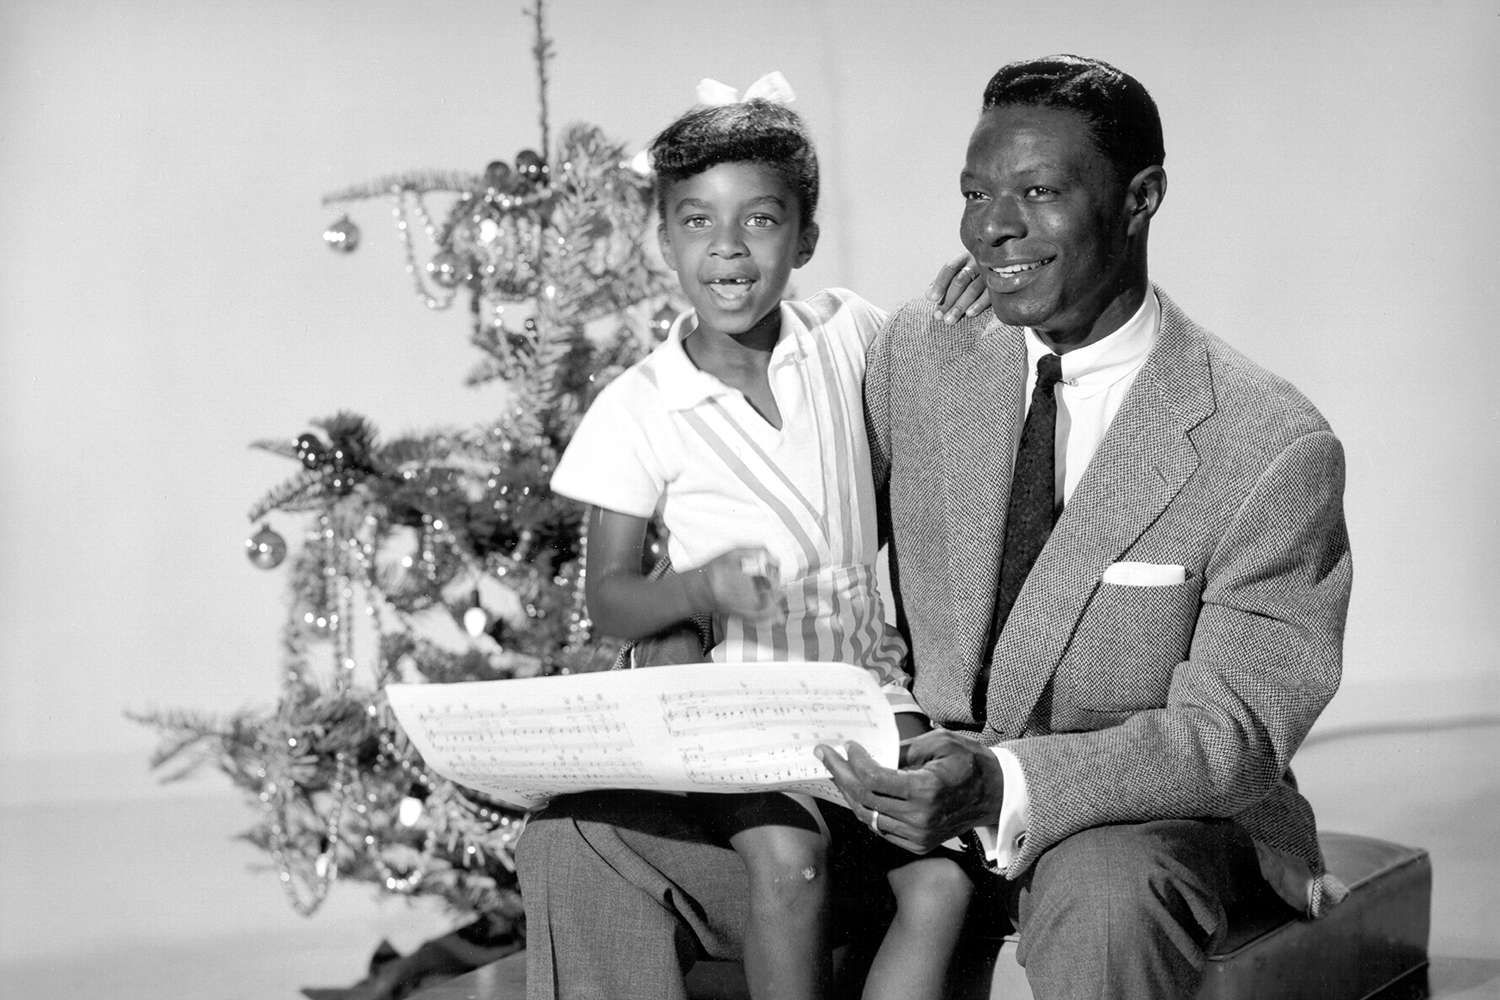 the christmas song nat king cole 1961 - 69 Boyz Christmas Song